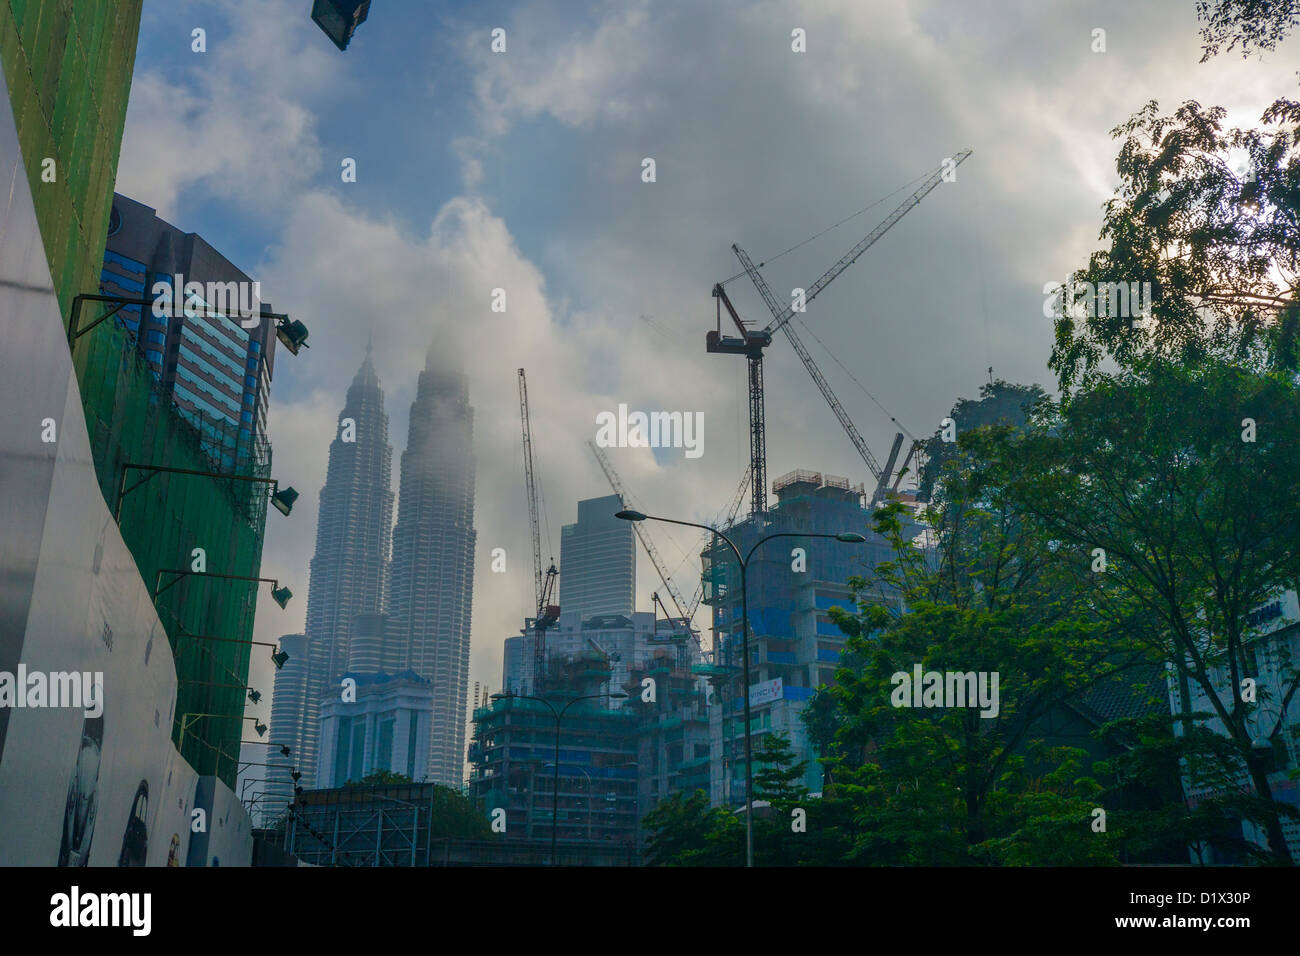 Clouds scraping the top of the Petronas twin towers with construction work underway in the foreground - Stock Image